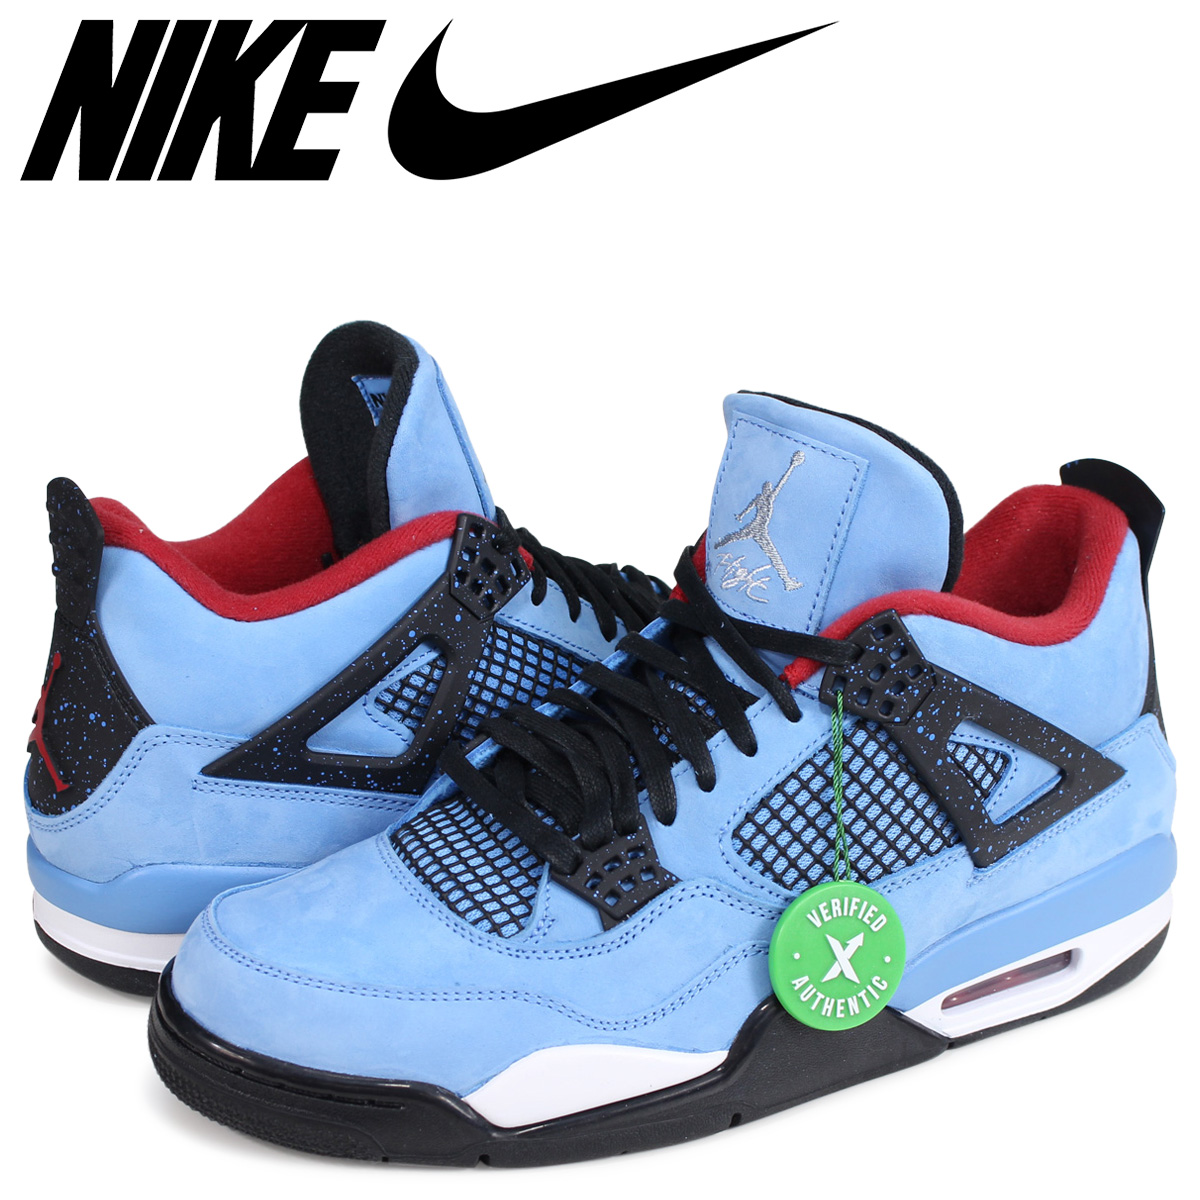 hot sale online 6e7bc a17bf NIKE AIR JORDAN 4 RETRO TRAVIS SCOTT Nike Air Jordan 4 sneakers 308,497-406  blue [187]